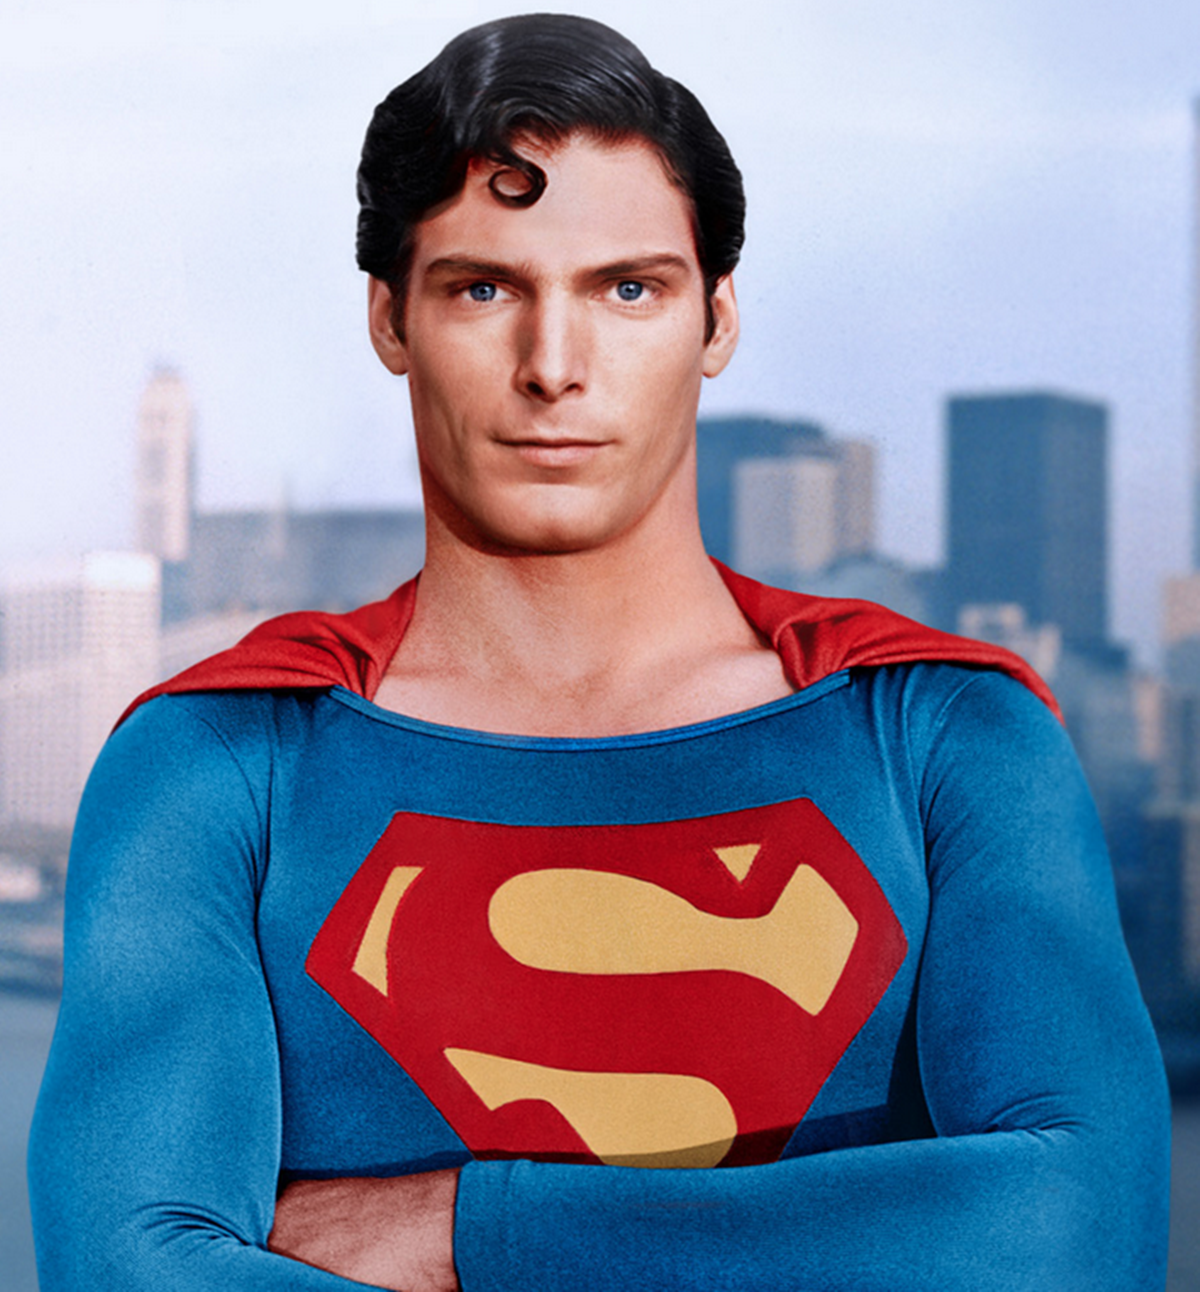 INTRO1 12 Things You May Have Missed In Christopher Reeve's Superman Films